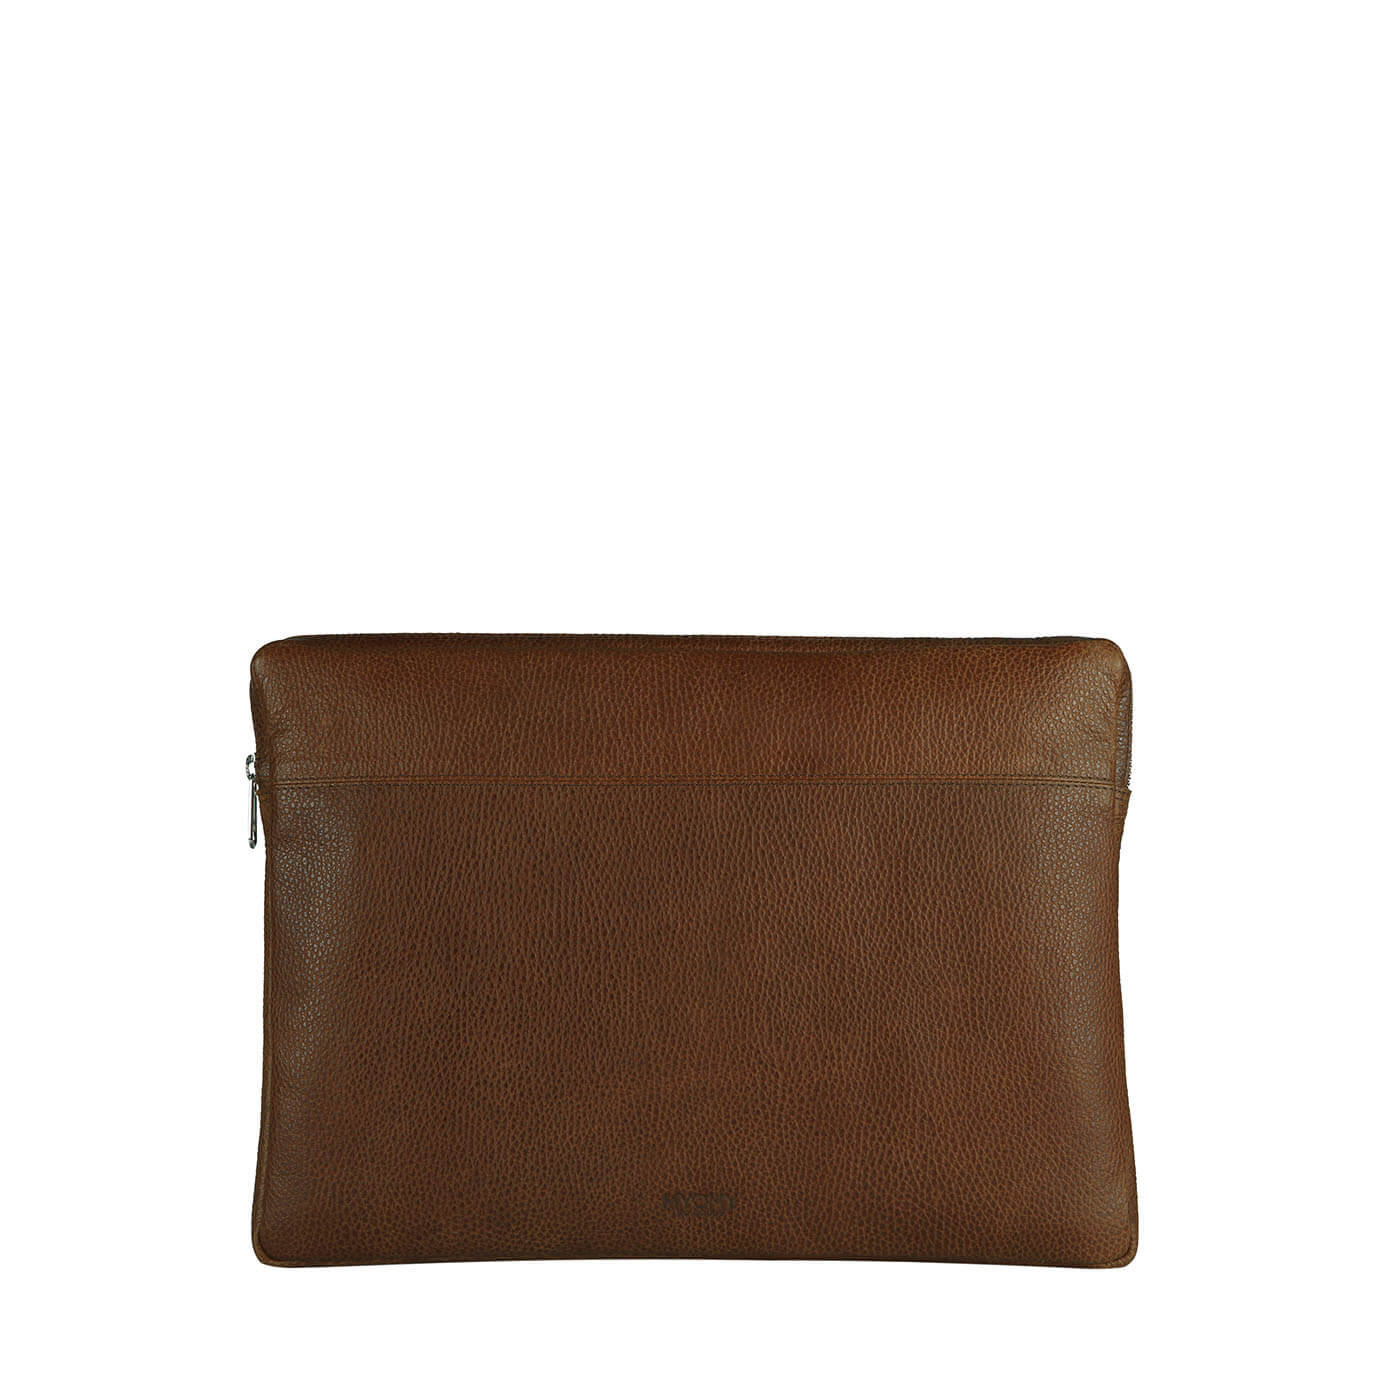 MY PHILIP BAG Laptop Sleeve 15 inch – rambler brandy